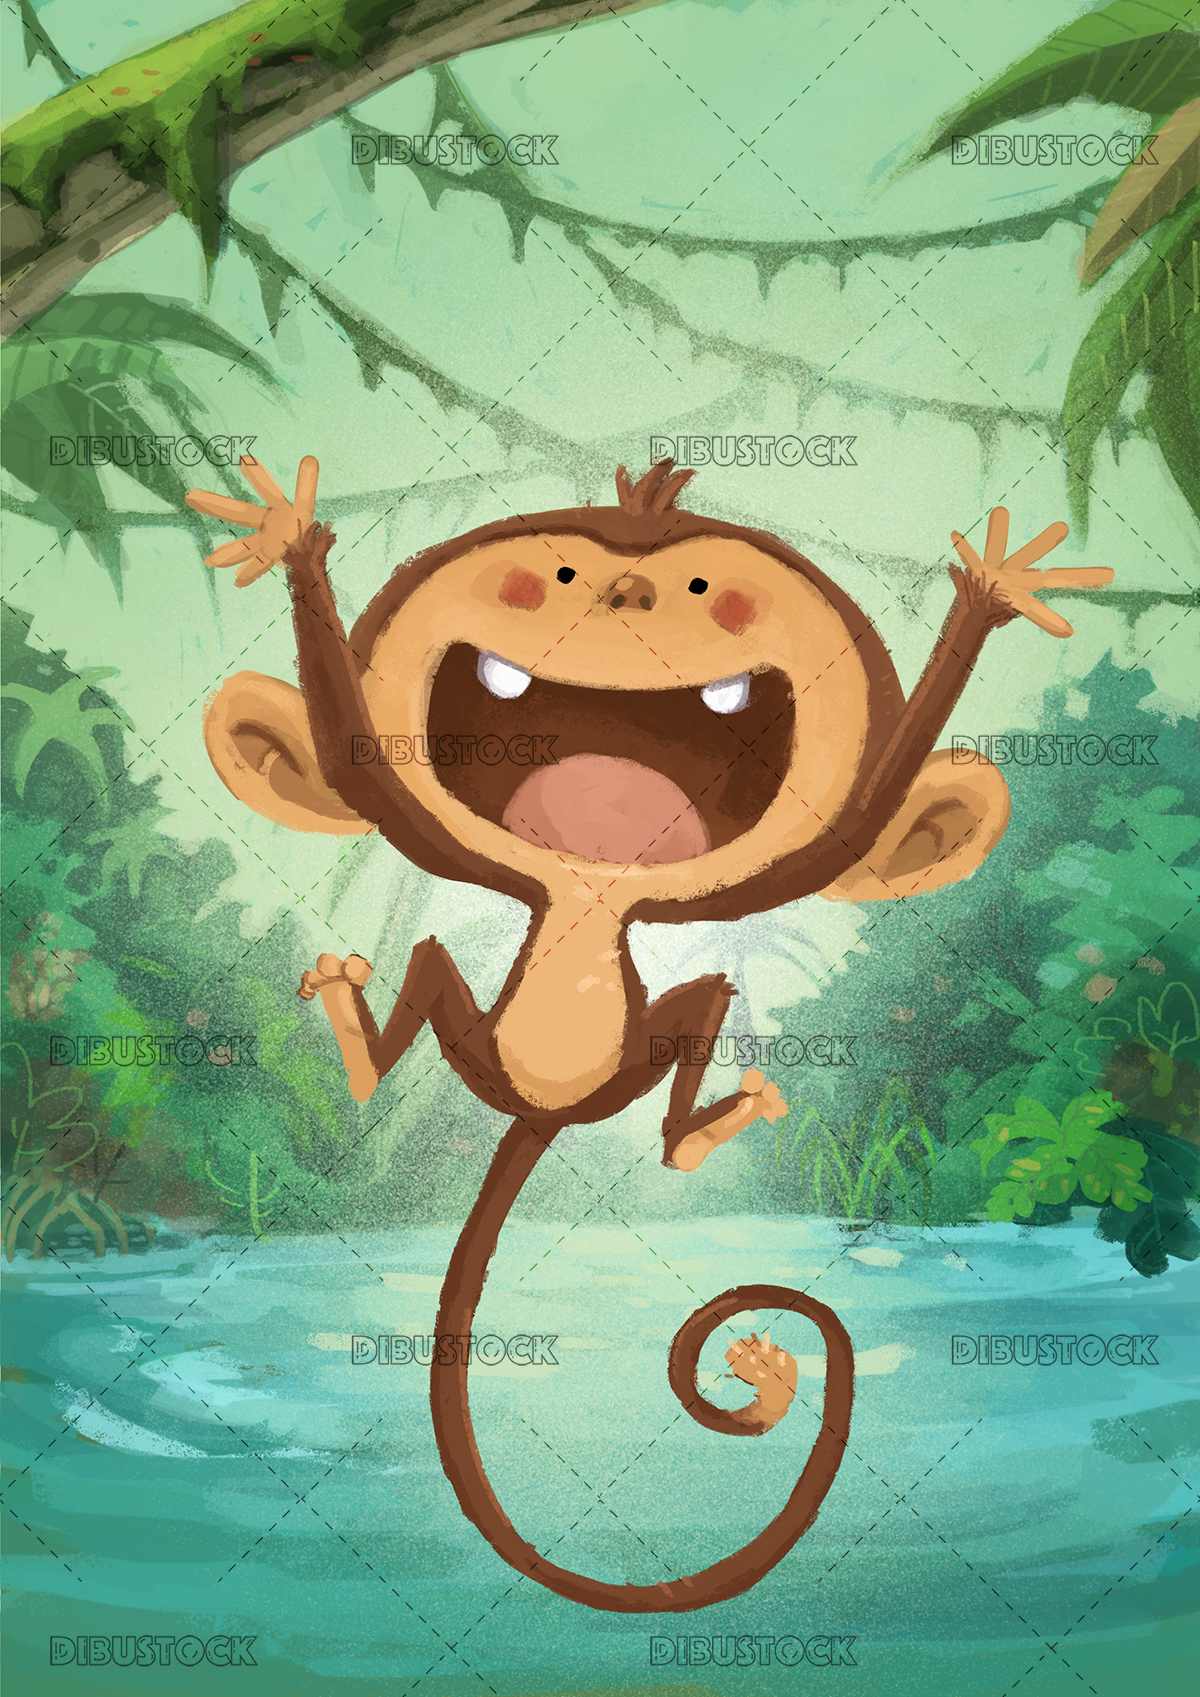 Monkey jumping in the jungle